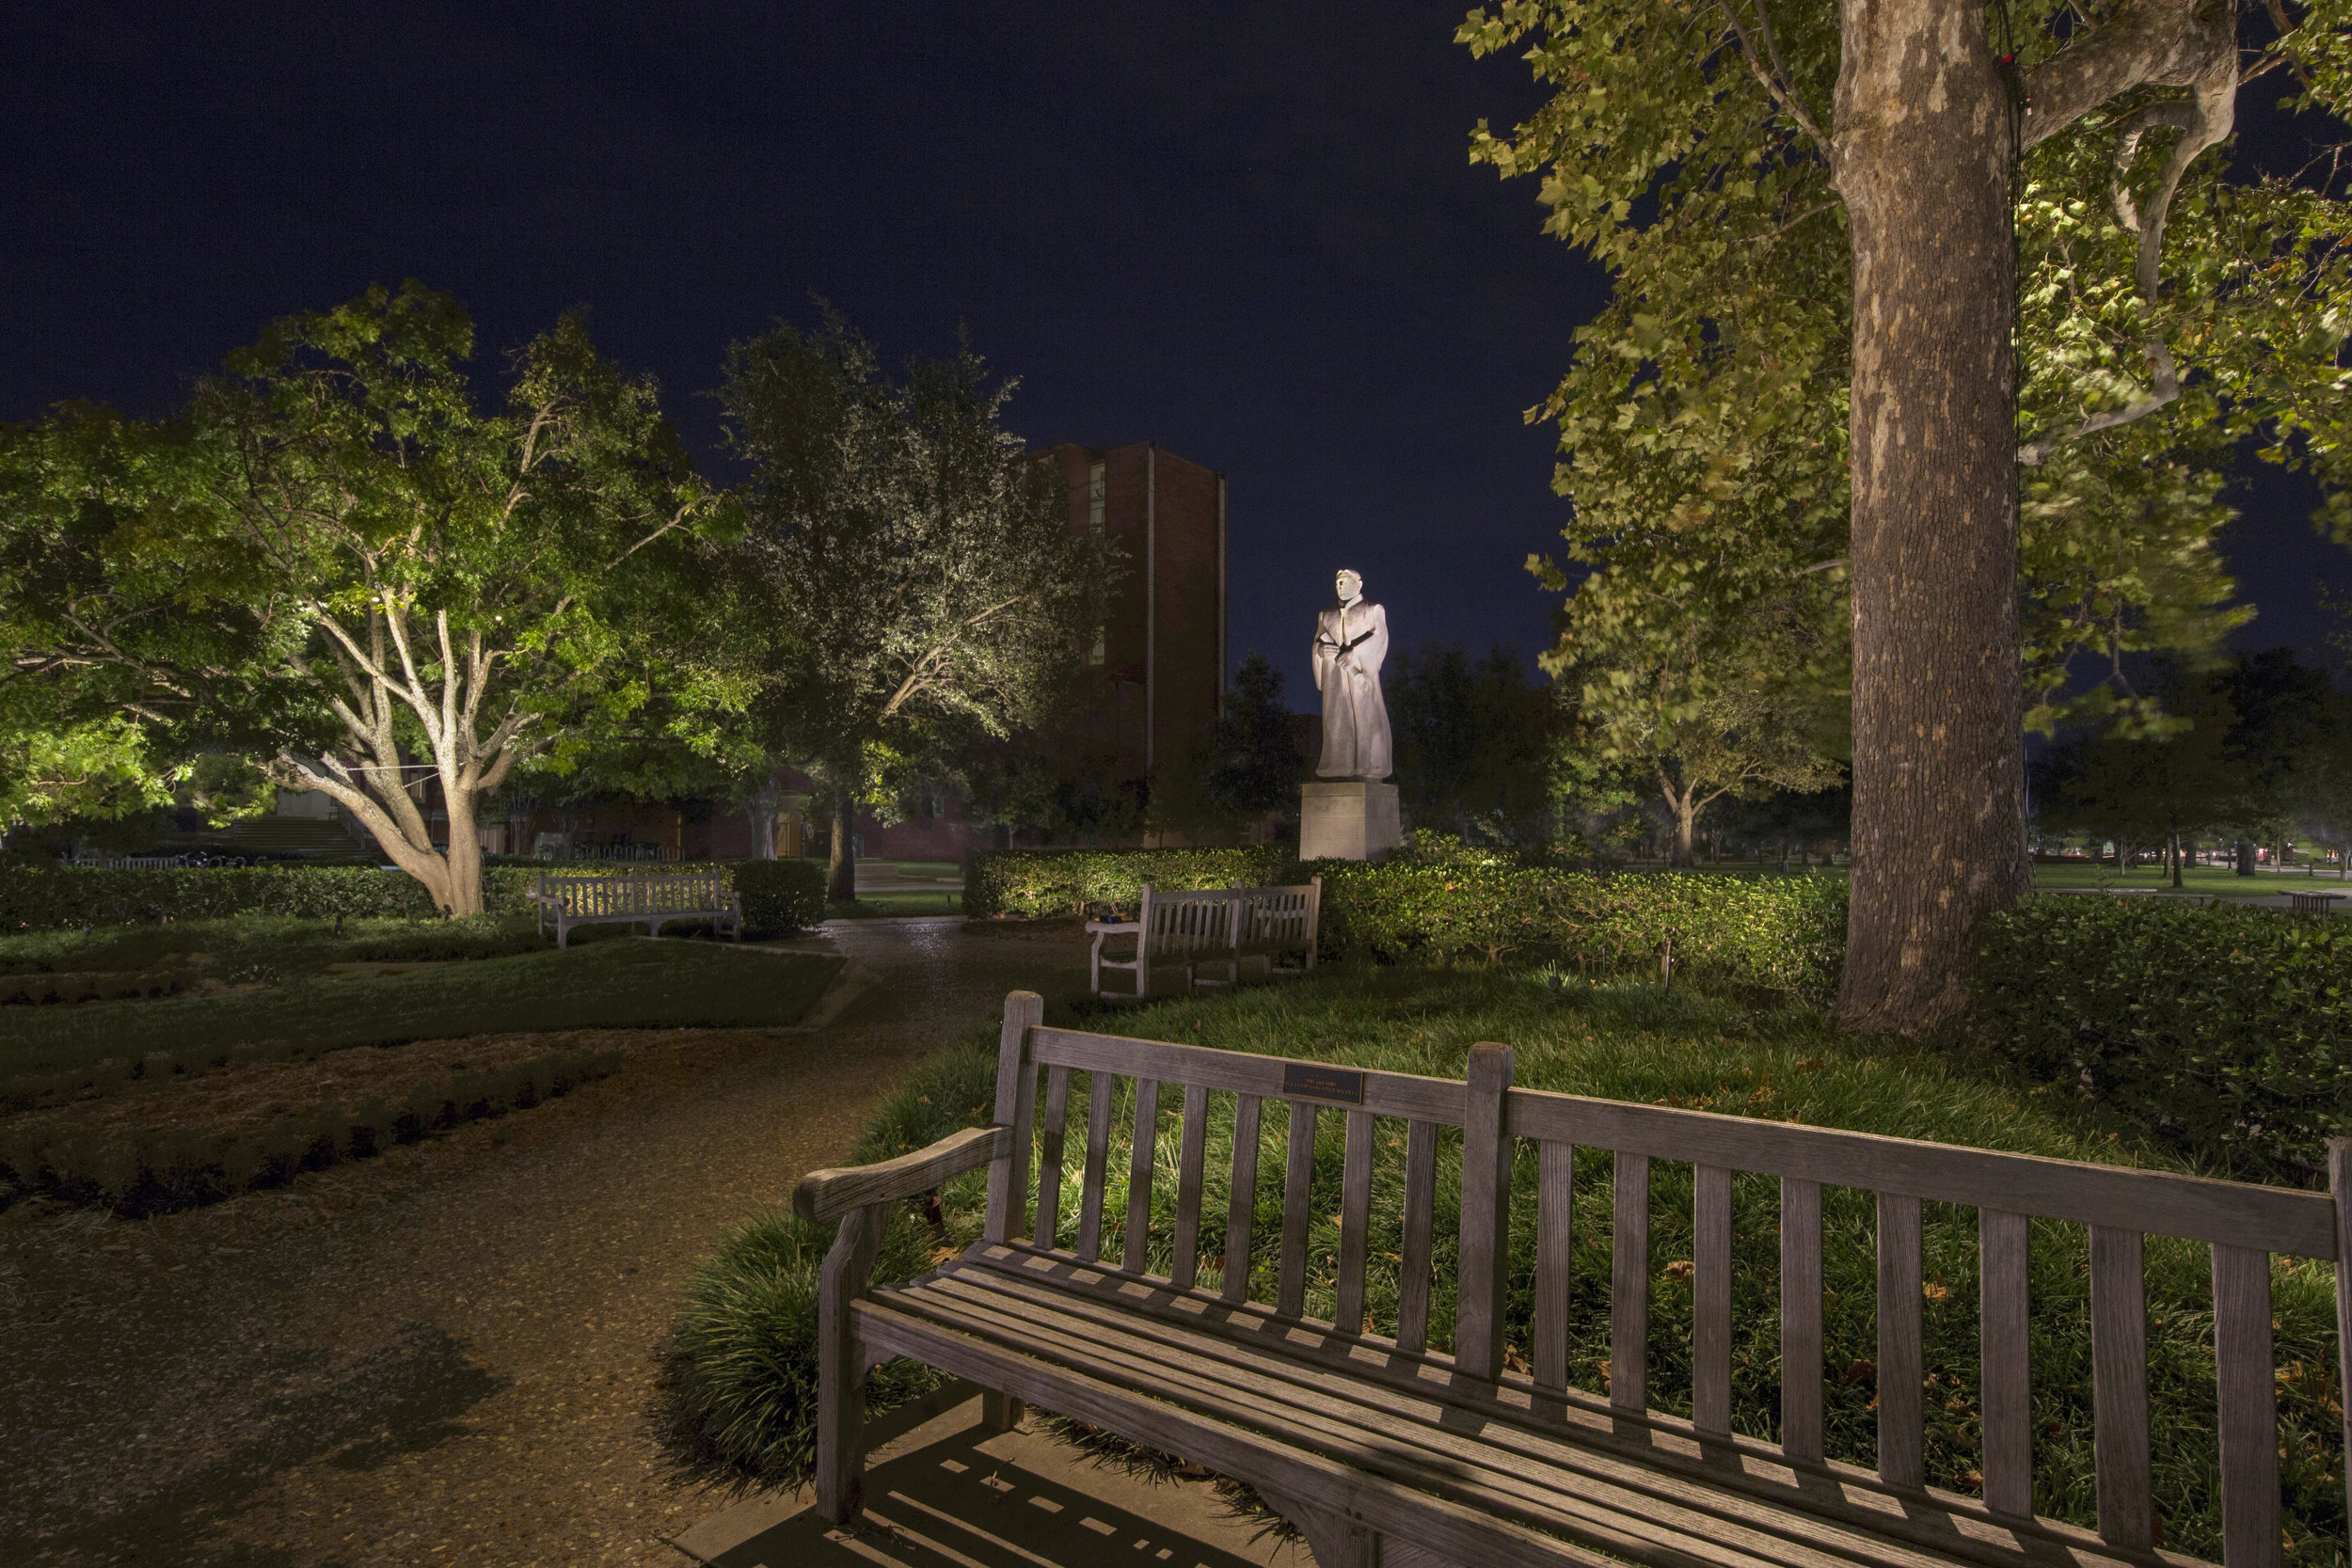 Bizzell Statue Garden, University of Oklahoma, Intensive Course 2018